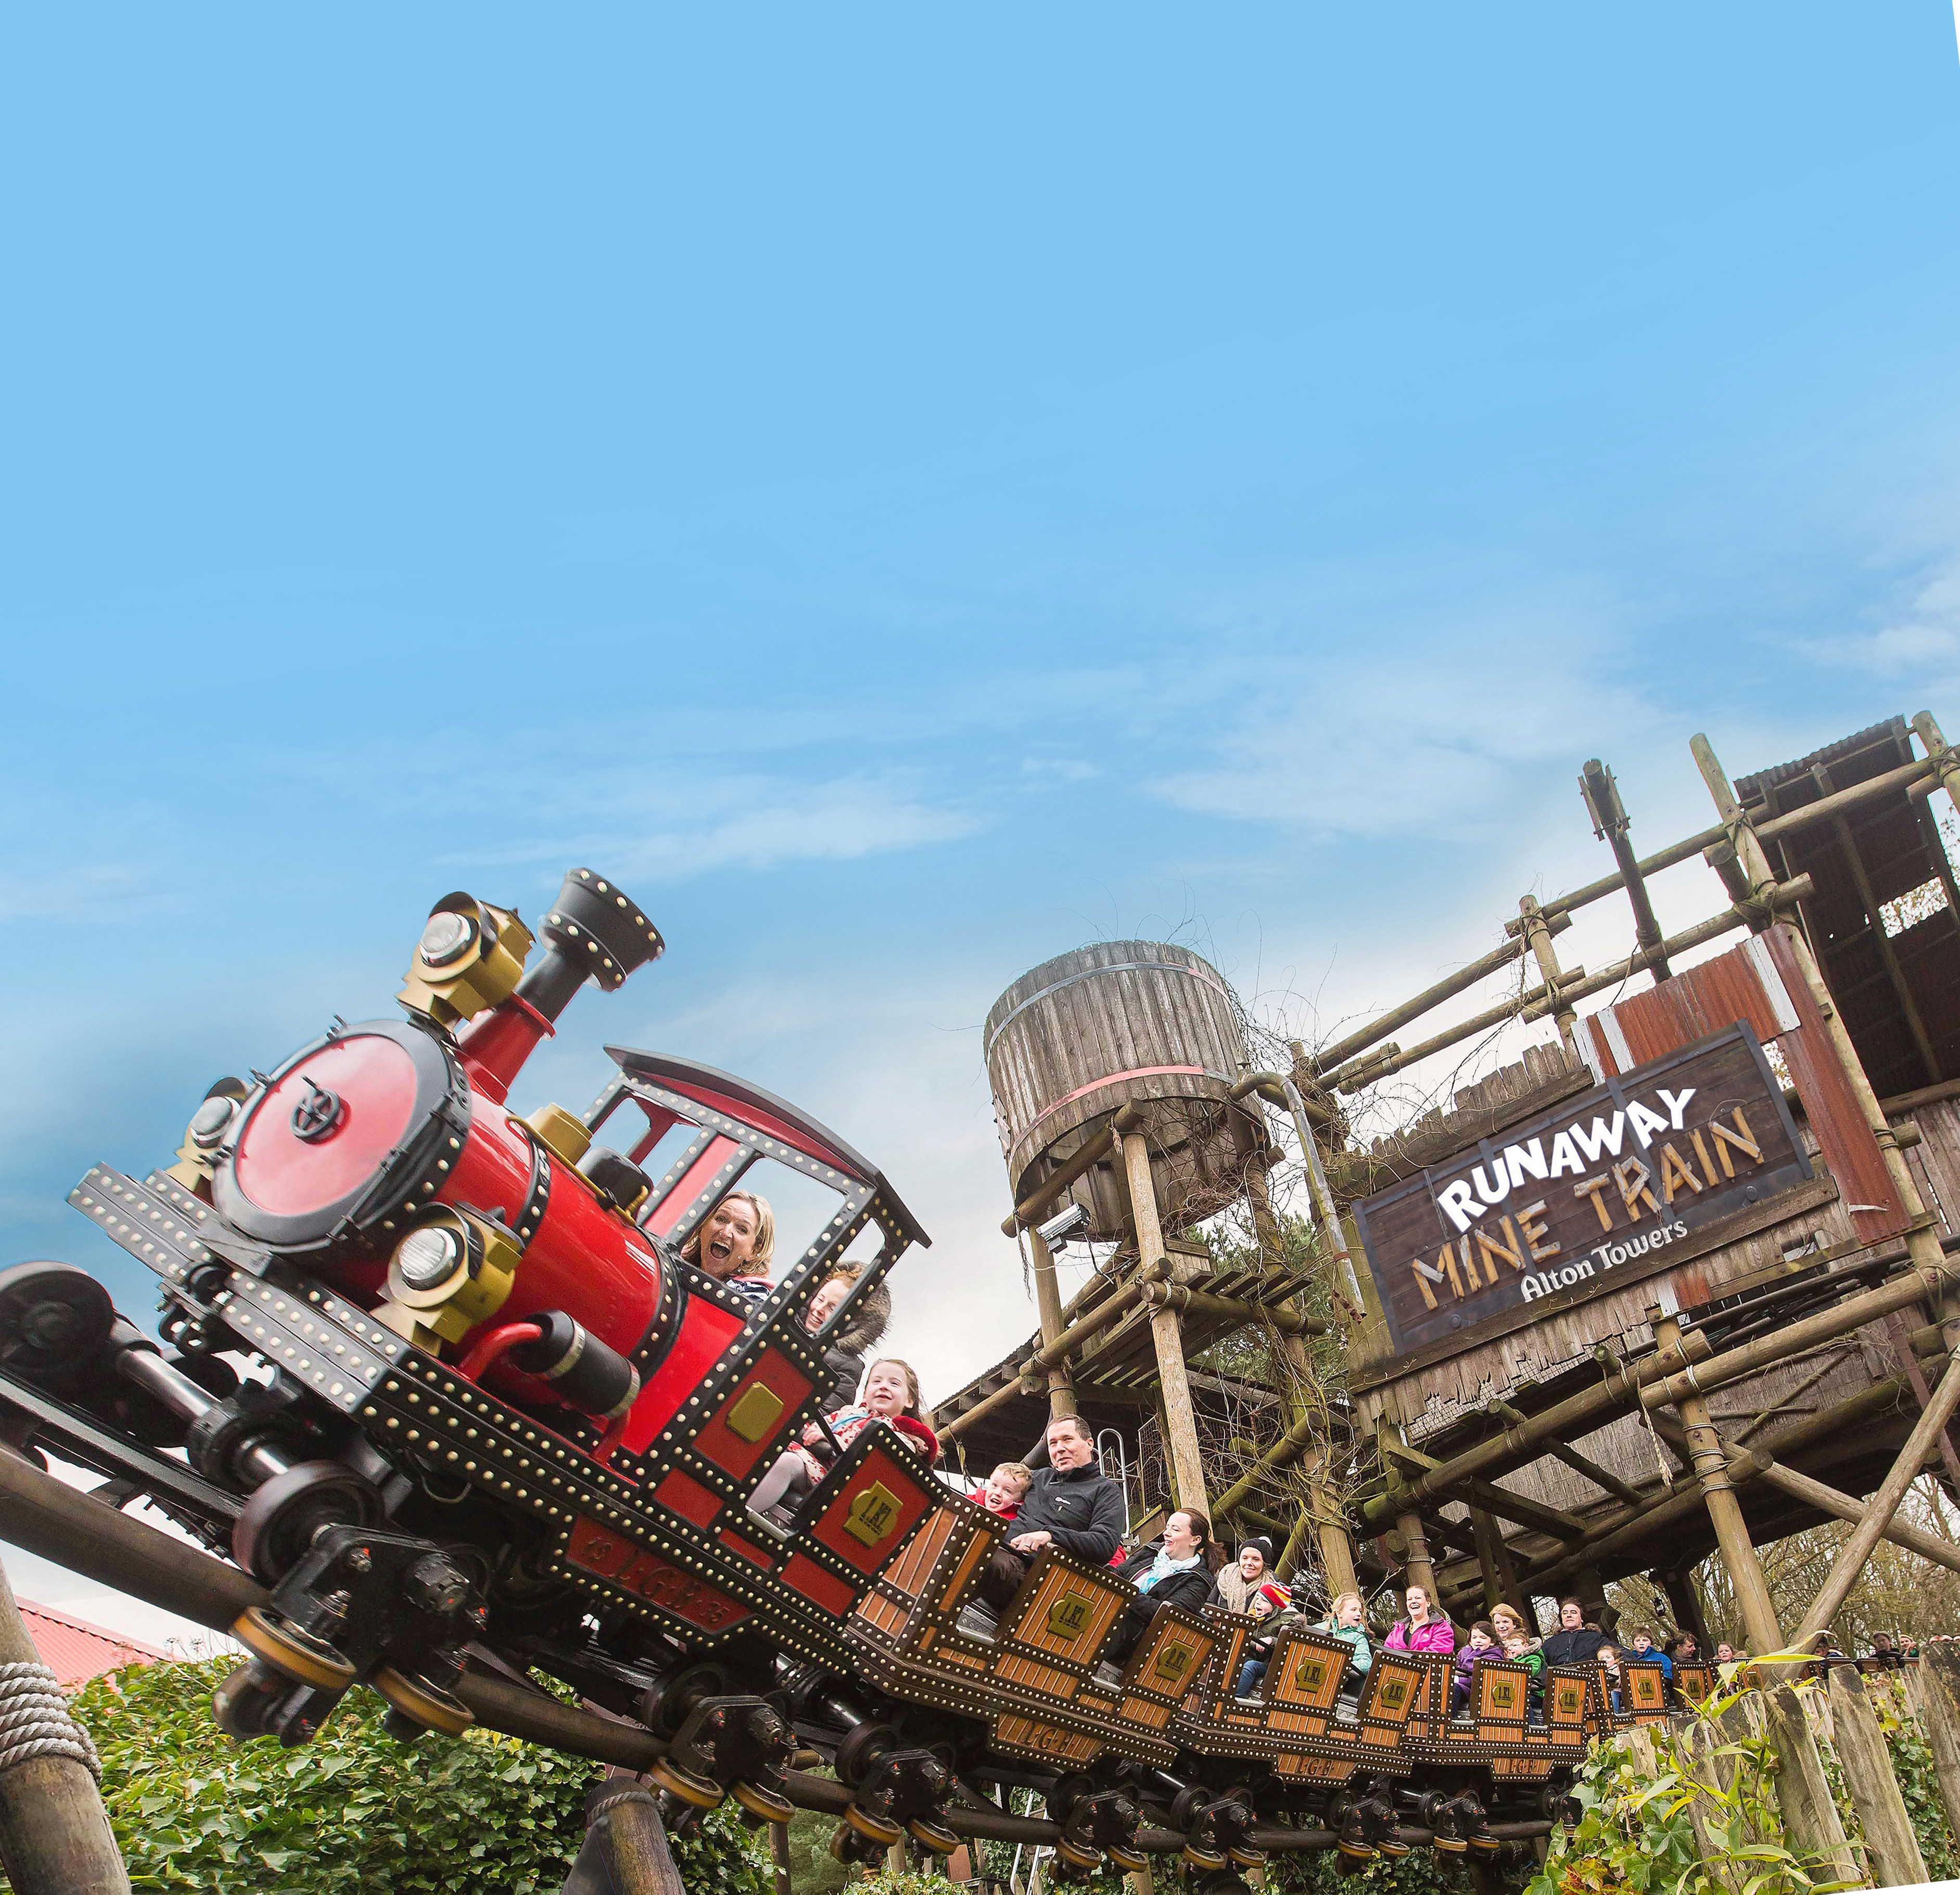 Here's how to win two FREE tickets to Alton Towers Resort worth more than £110